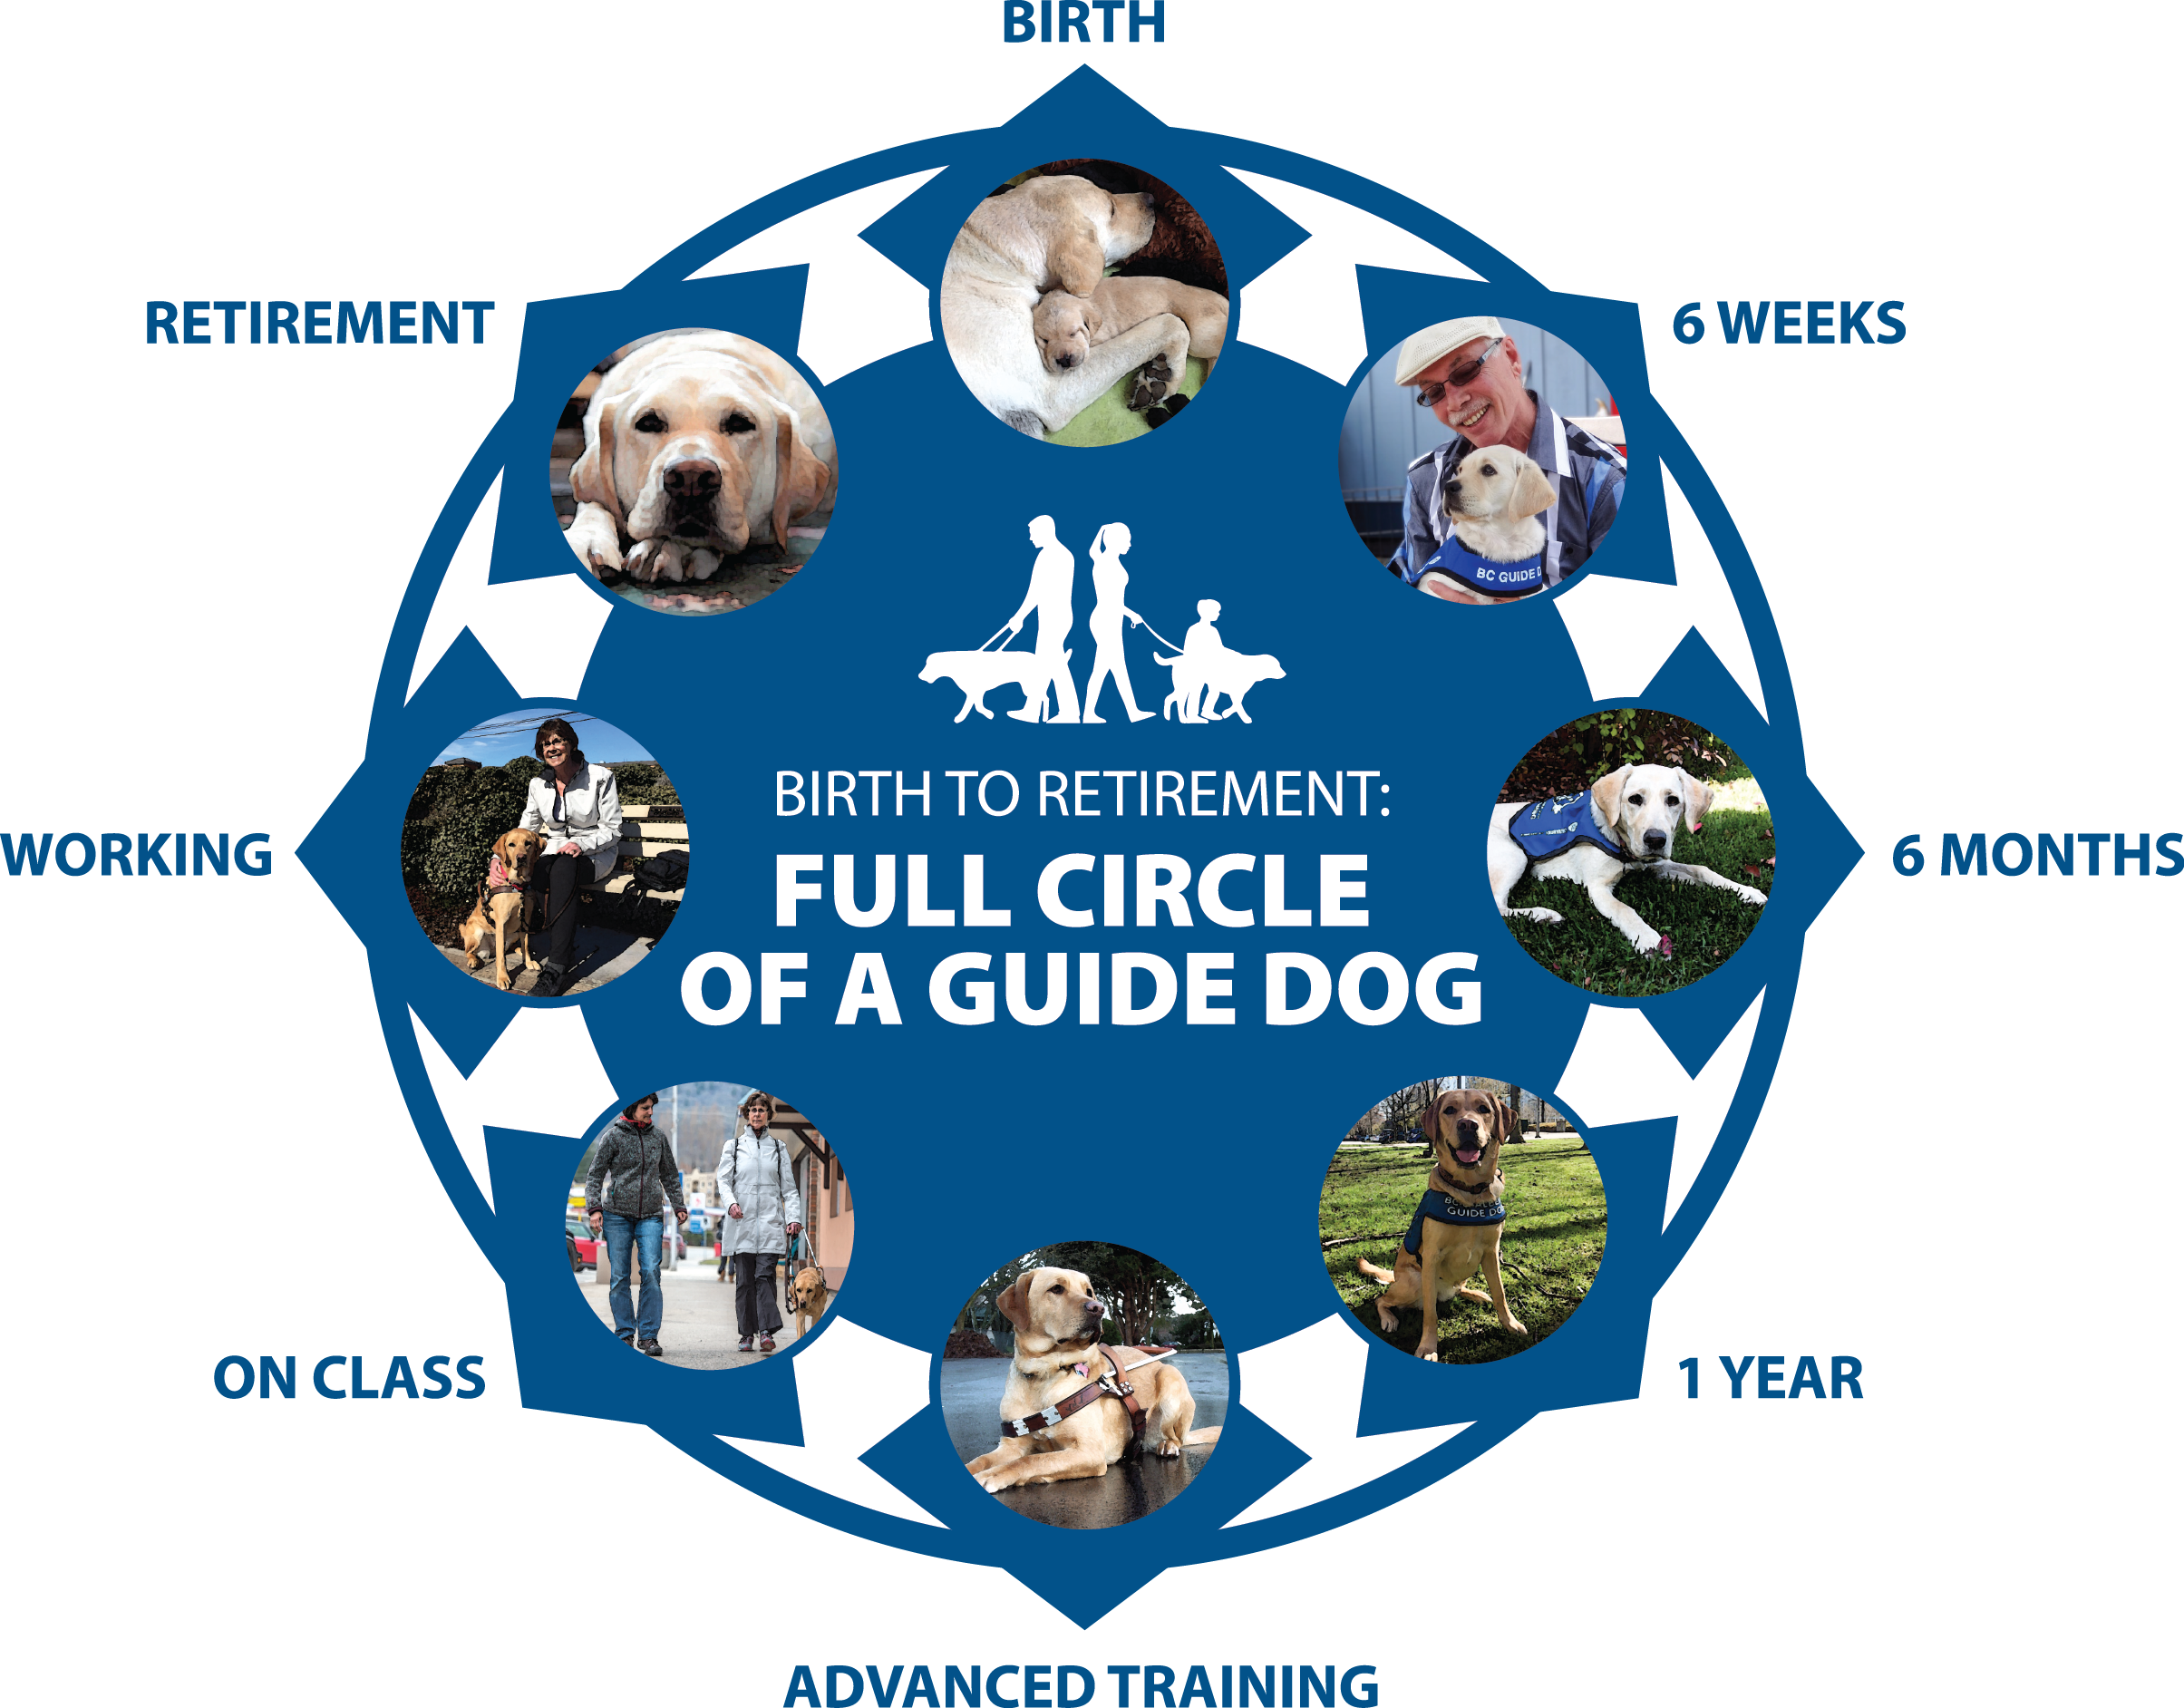 For International Guide Dog Day, we are launching our movie Birth to Retirement: Full Circle of a Guide Dog